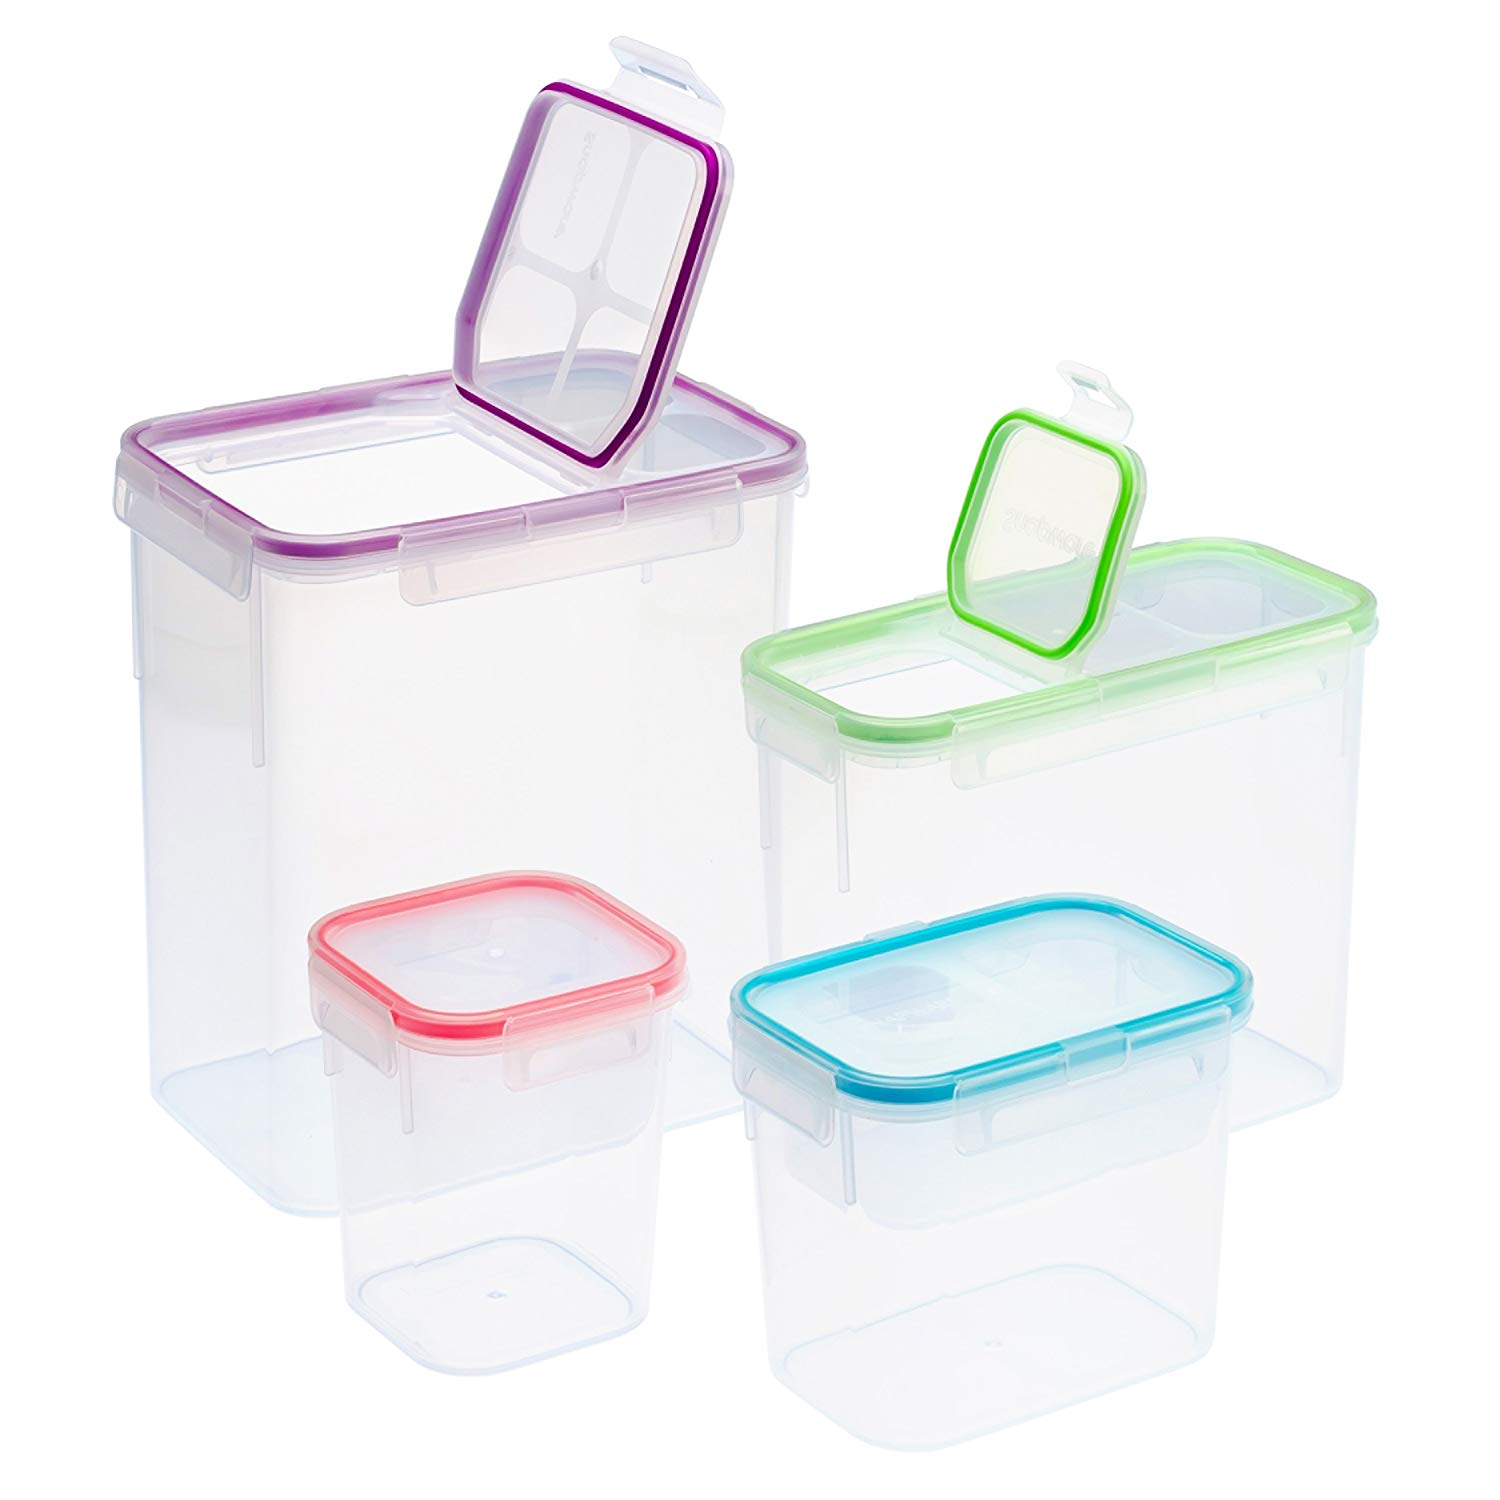 Snapware 29 Cup Square Airtight Food Storage w/ Large Handle # 1098436